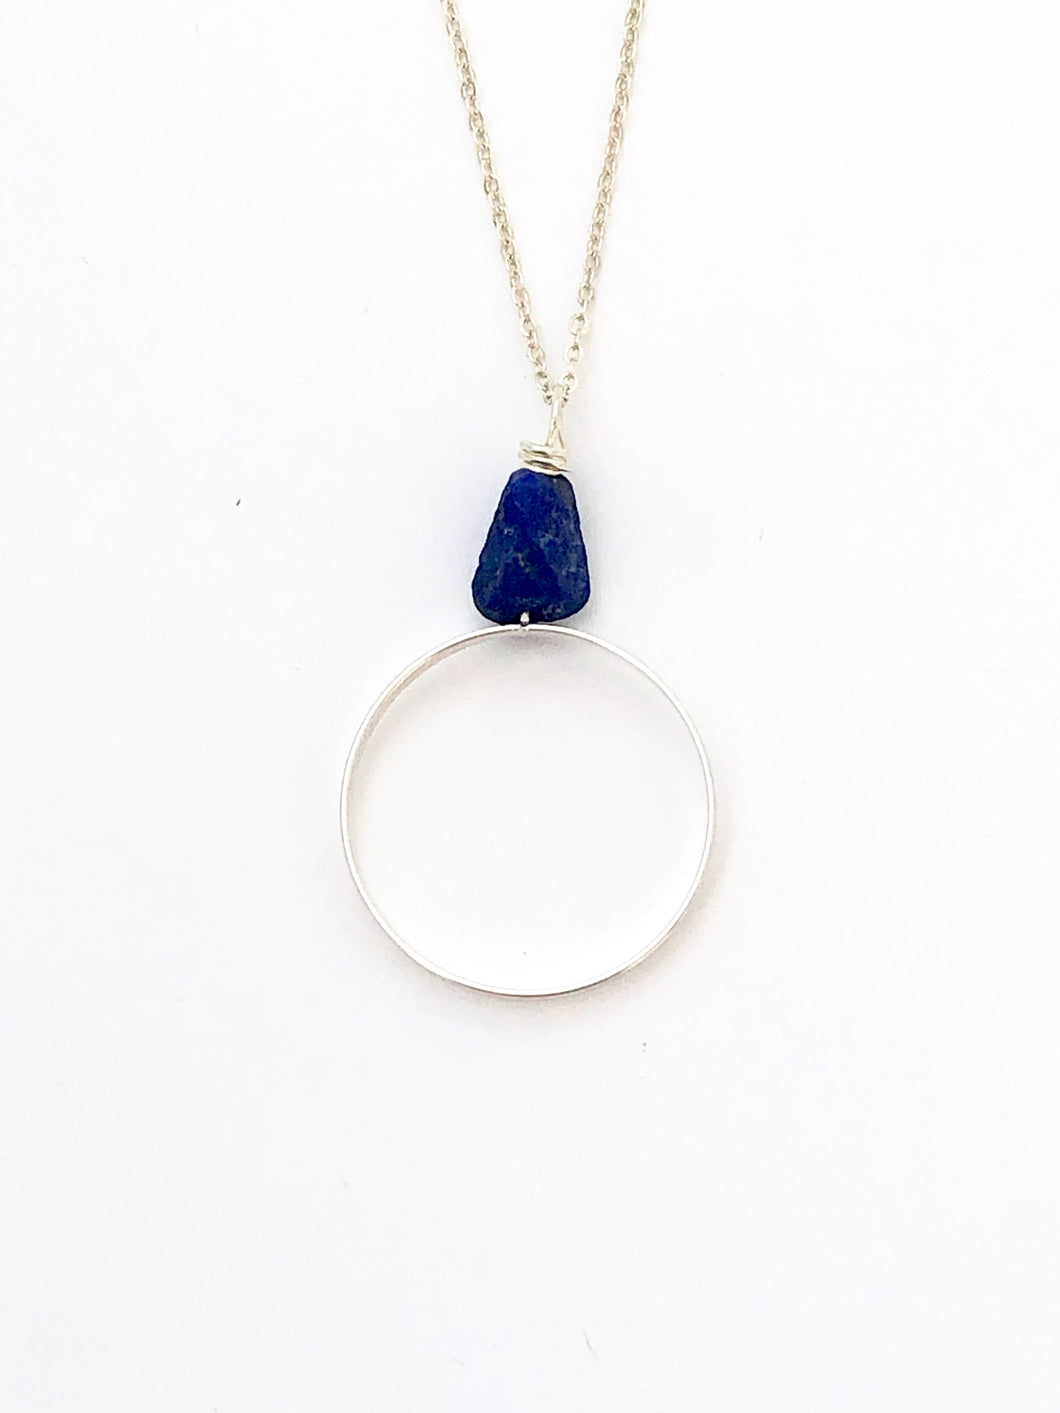 Lapis Lazuli Sterling Silver Pendant - Full Moon Designs